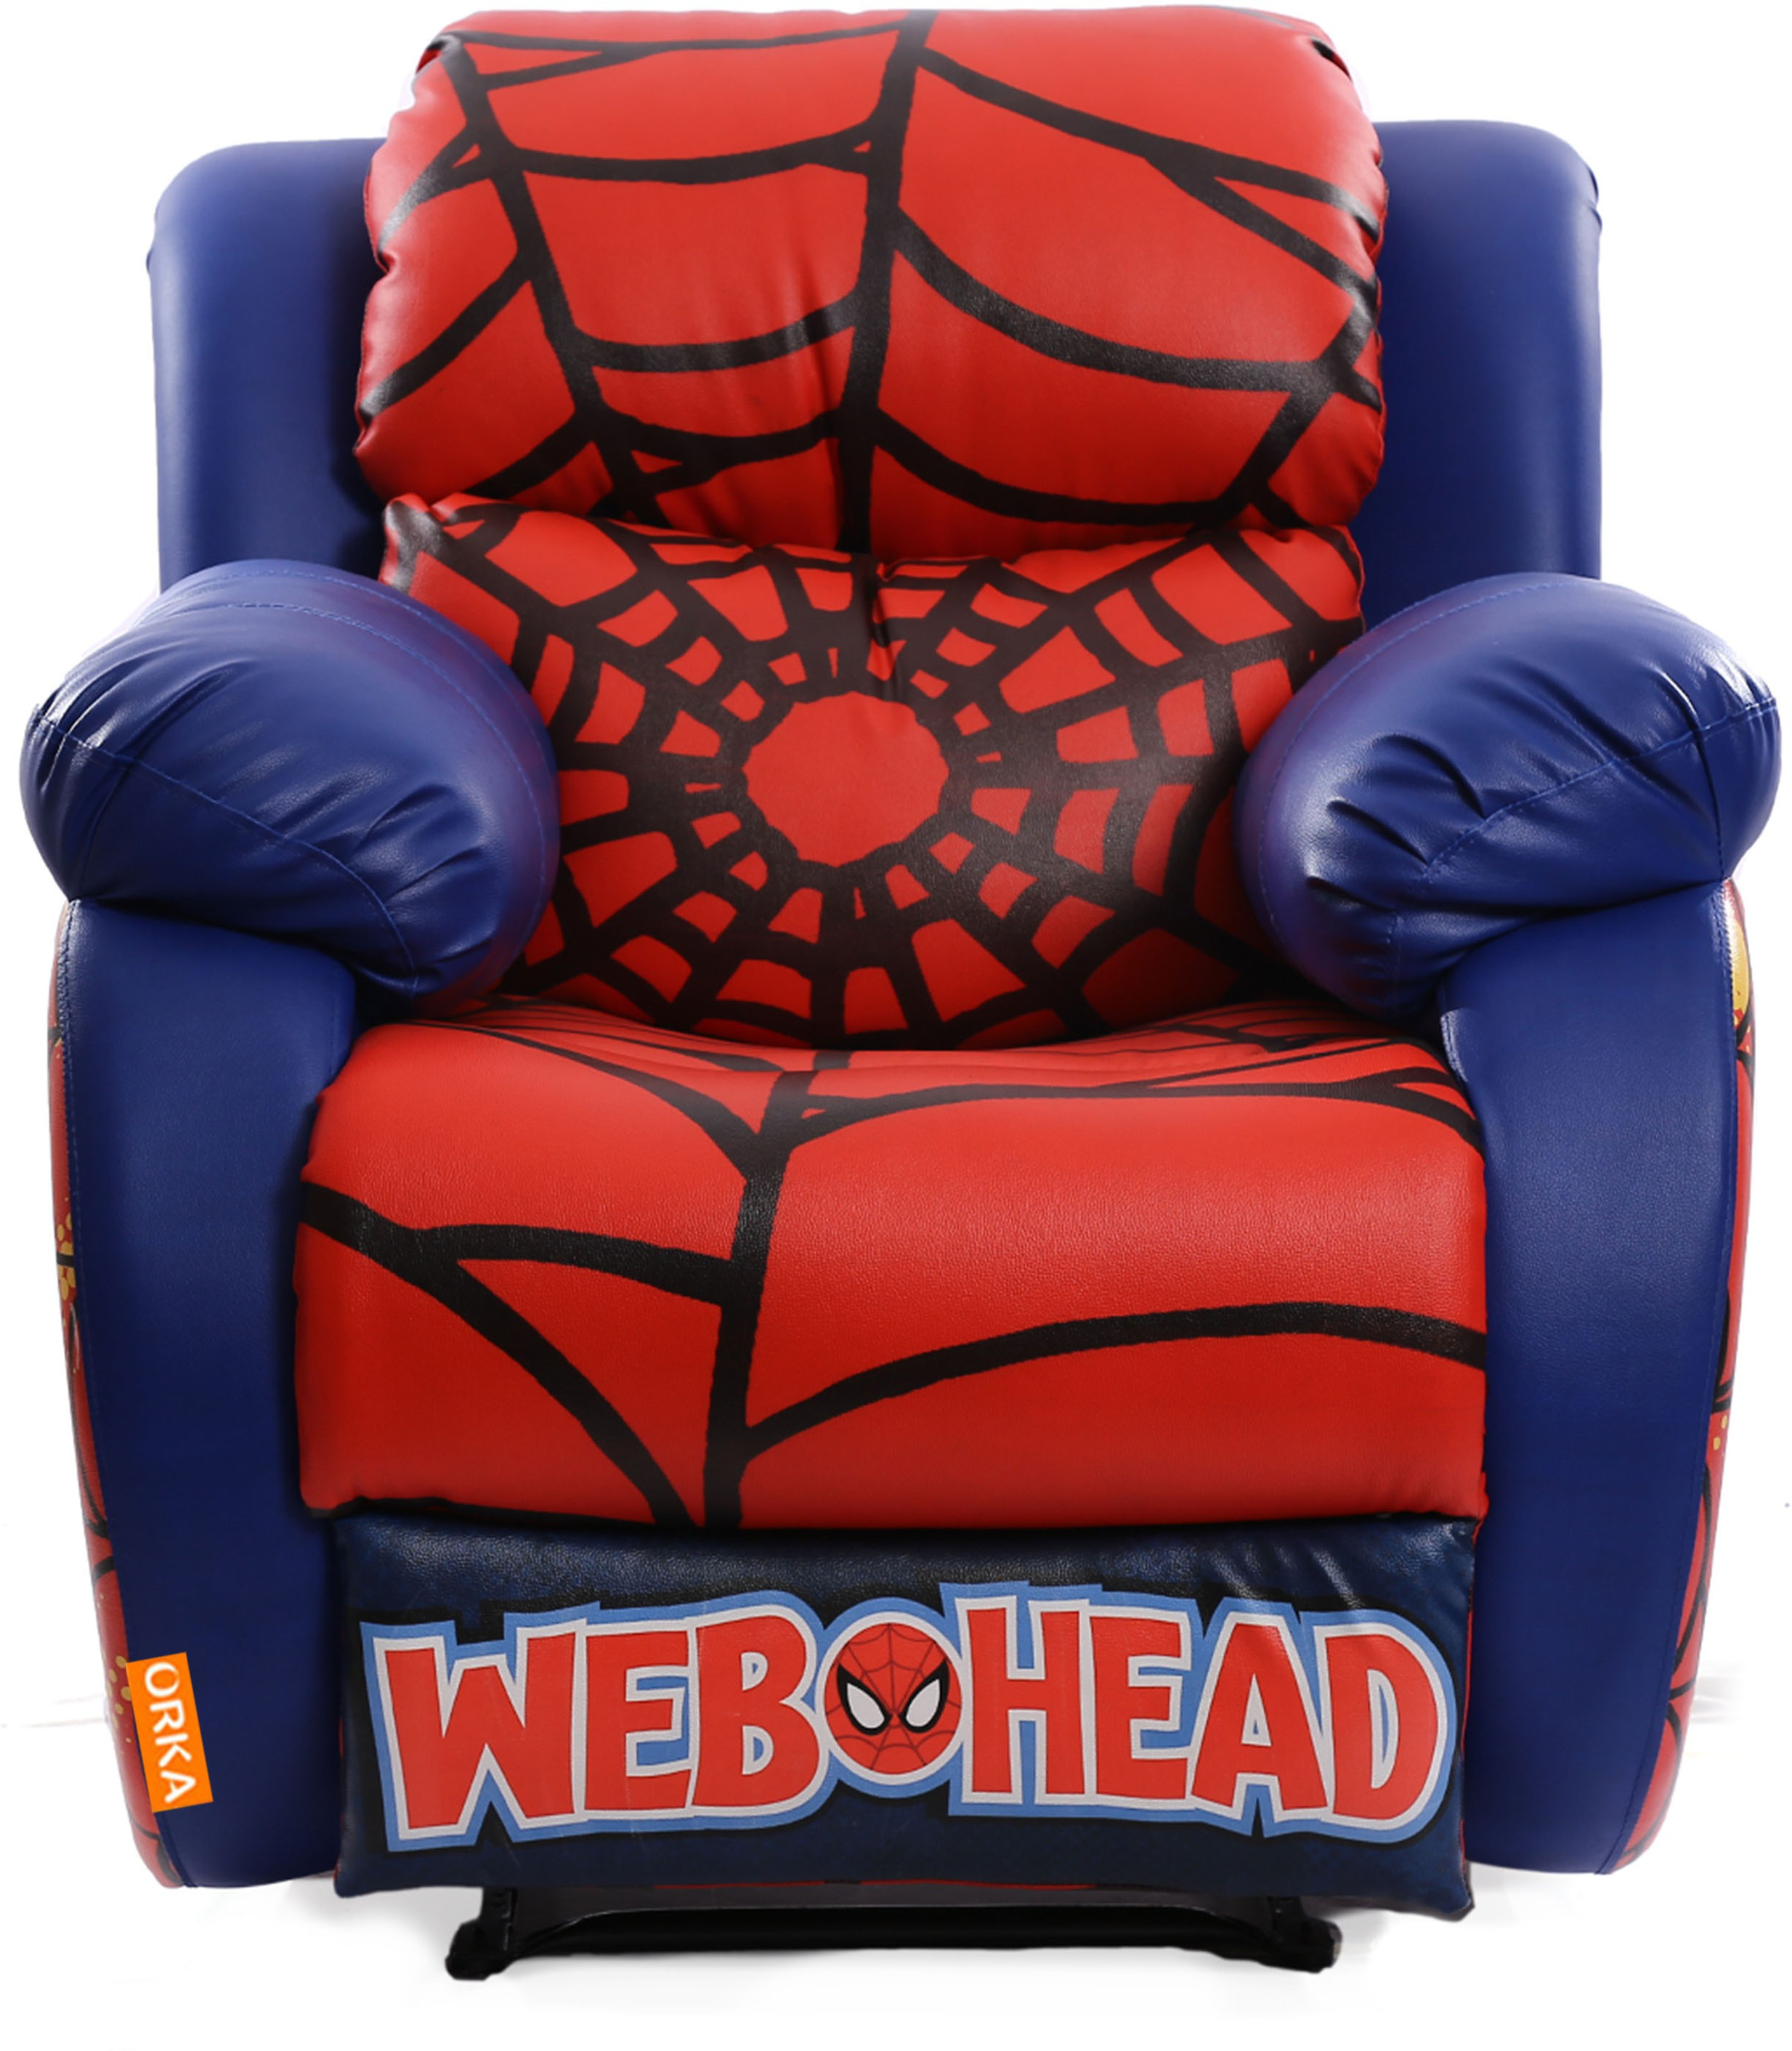 Deals | From Disney Leatherette Recliners